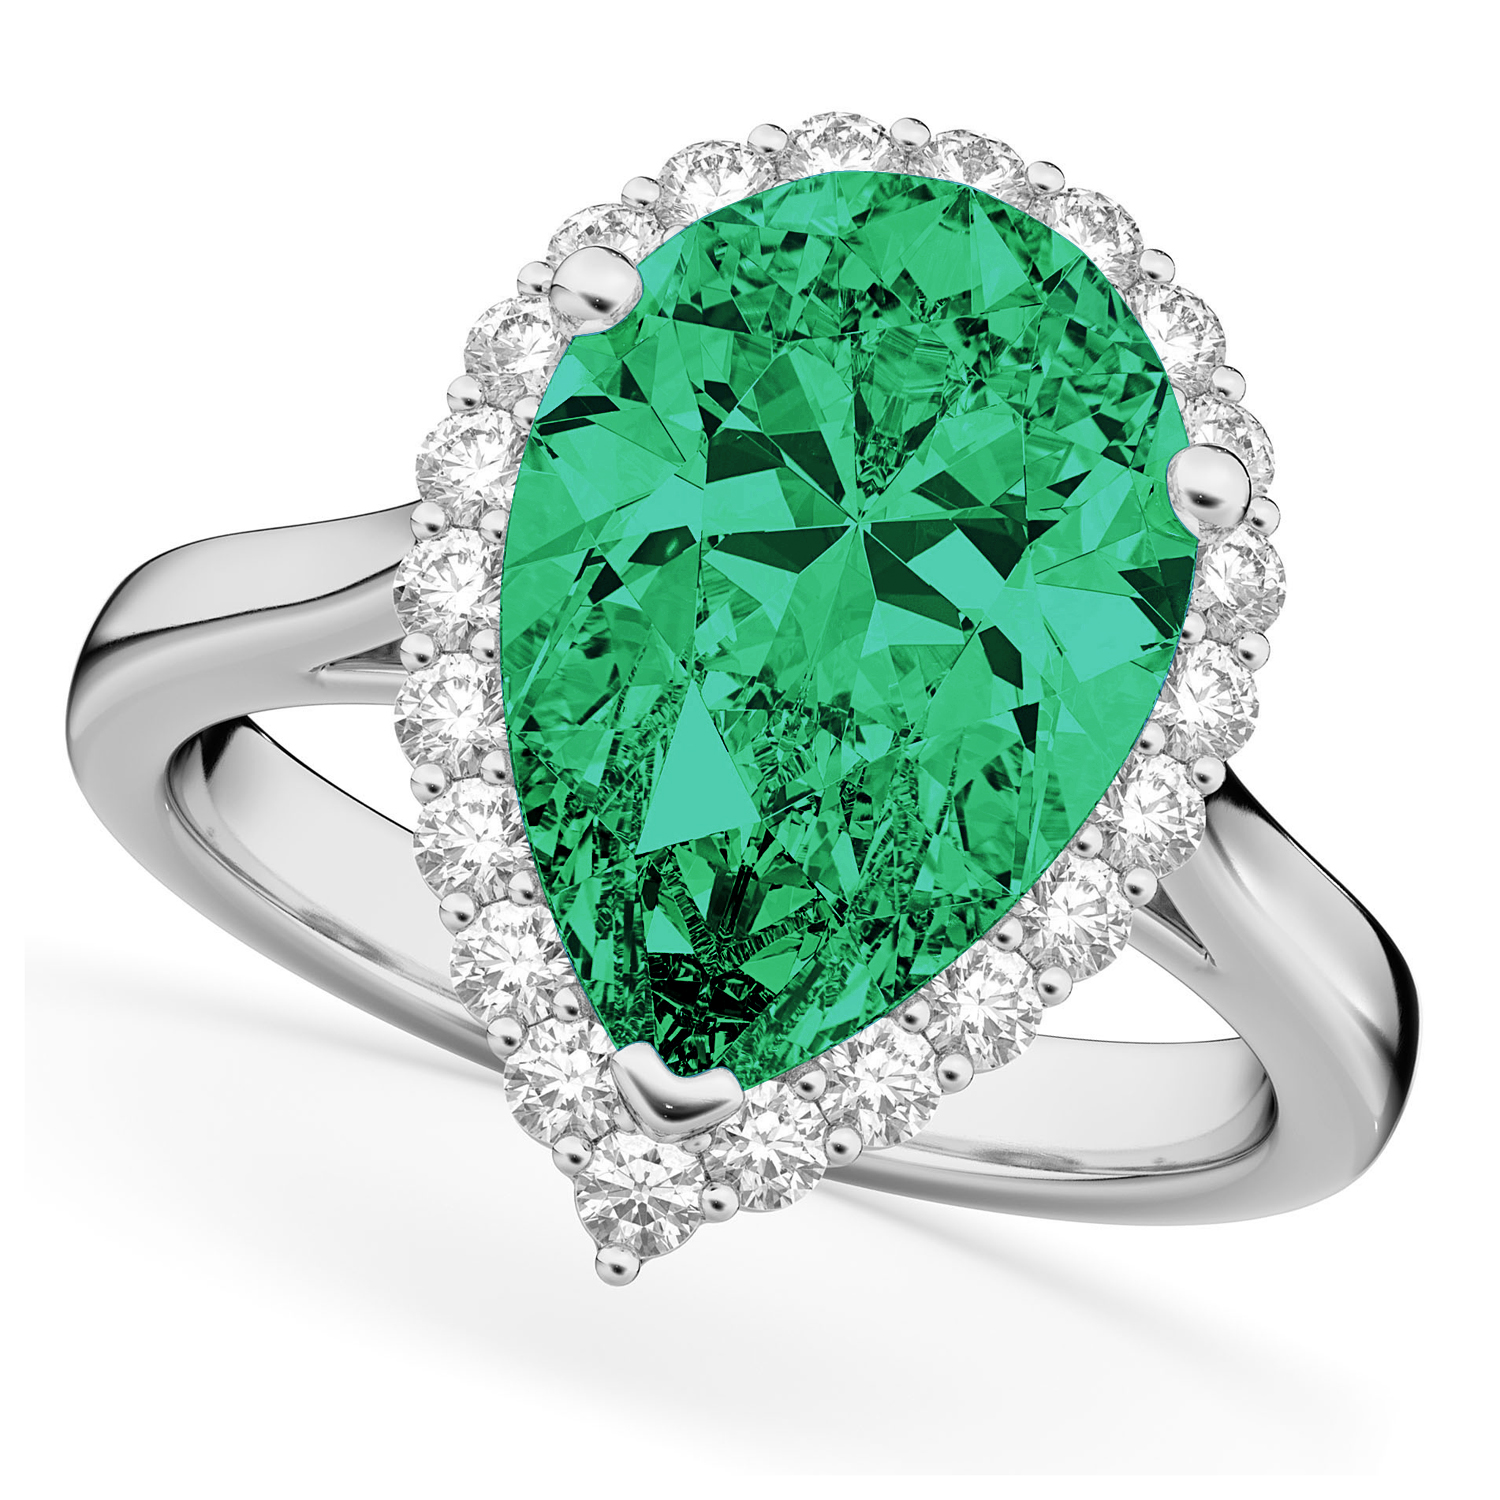 Pear Cut Halo Emerald & Diamond Engagement Ring 14K White Gold 6.54ct